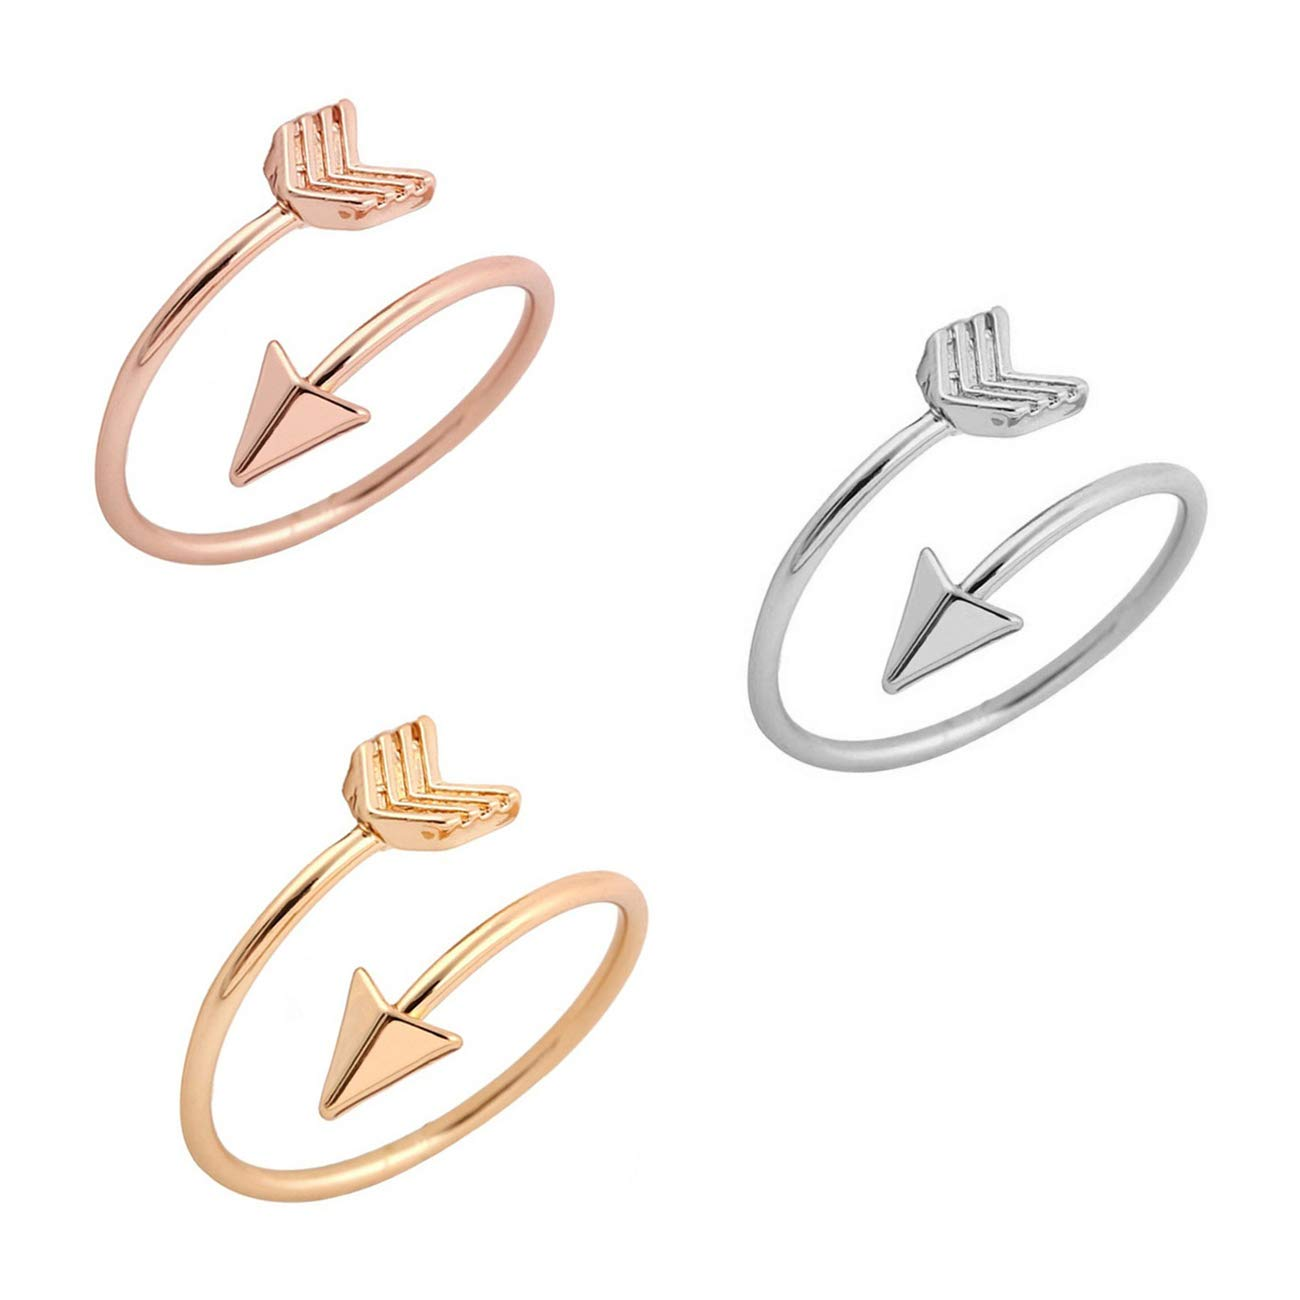 BRBAM Adjustable Love Struck Arrow Ring High Polished Wrap Ring for Woman (3 Color Set) by BRBAM